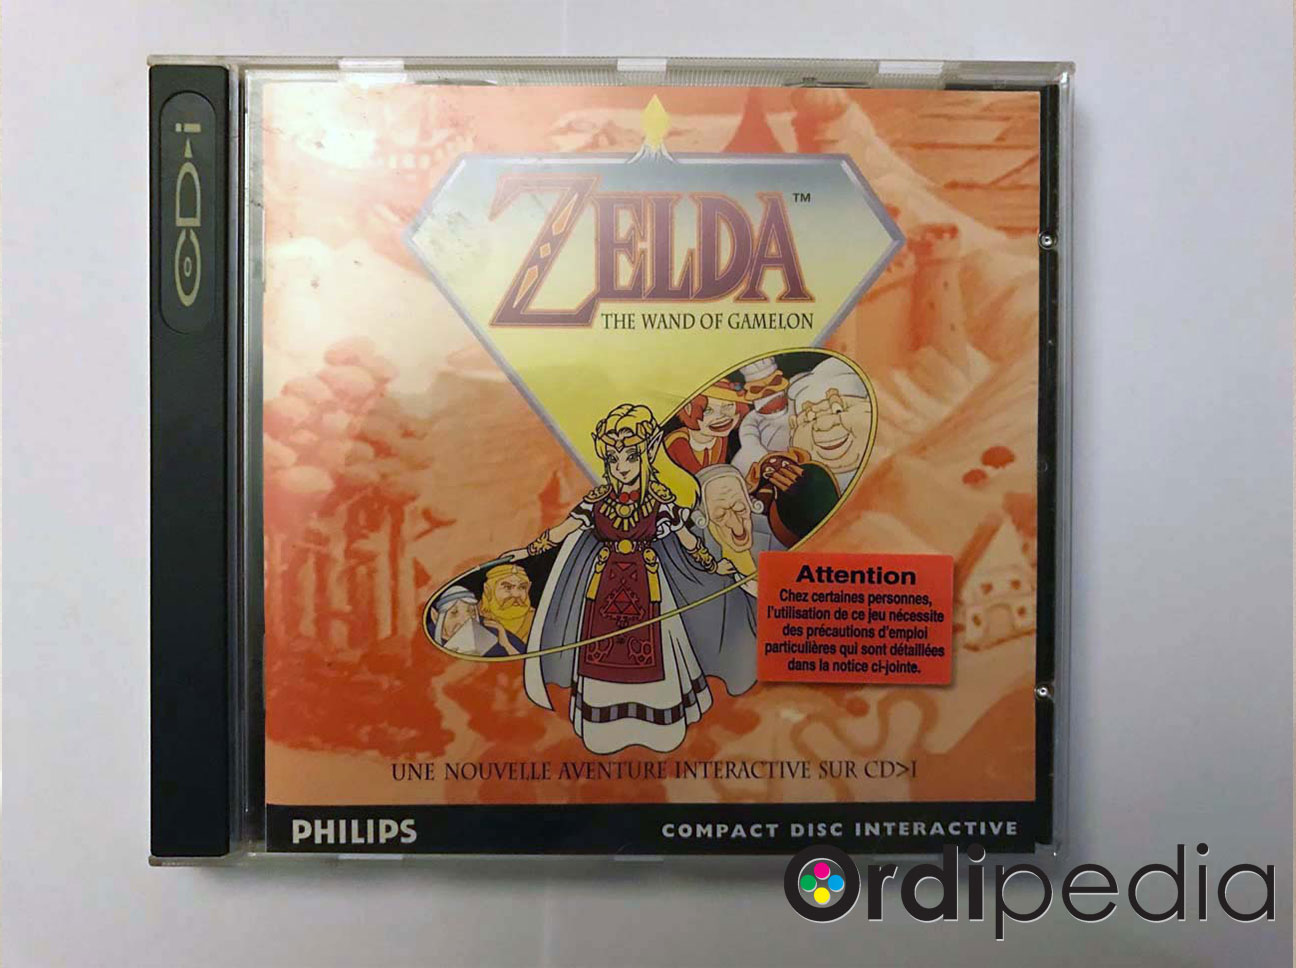 Zelda - The Wand of Gamelon